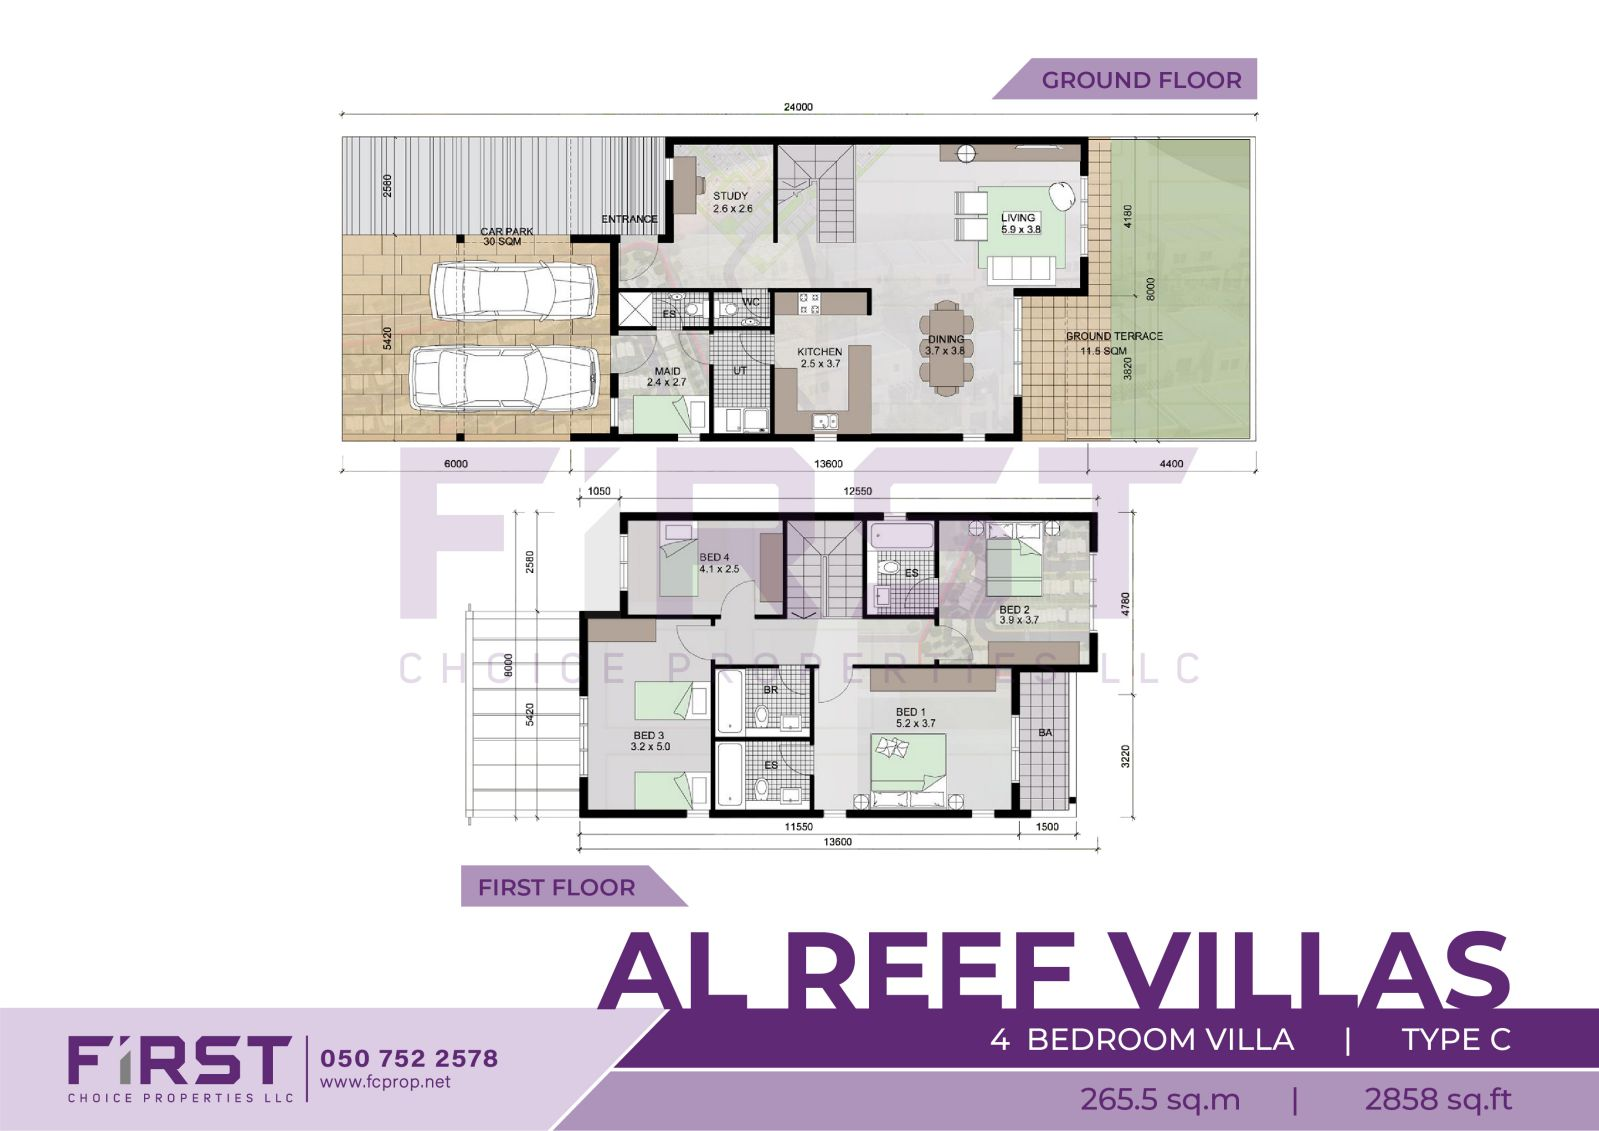 Al Reef Abu Dhabi Al Reef Villas 4 Bedroom Villa Type C 265.5 sq.m 2858 sq.ft.jpg